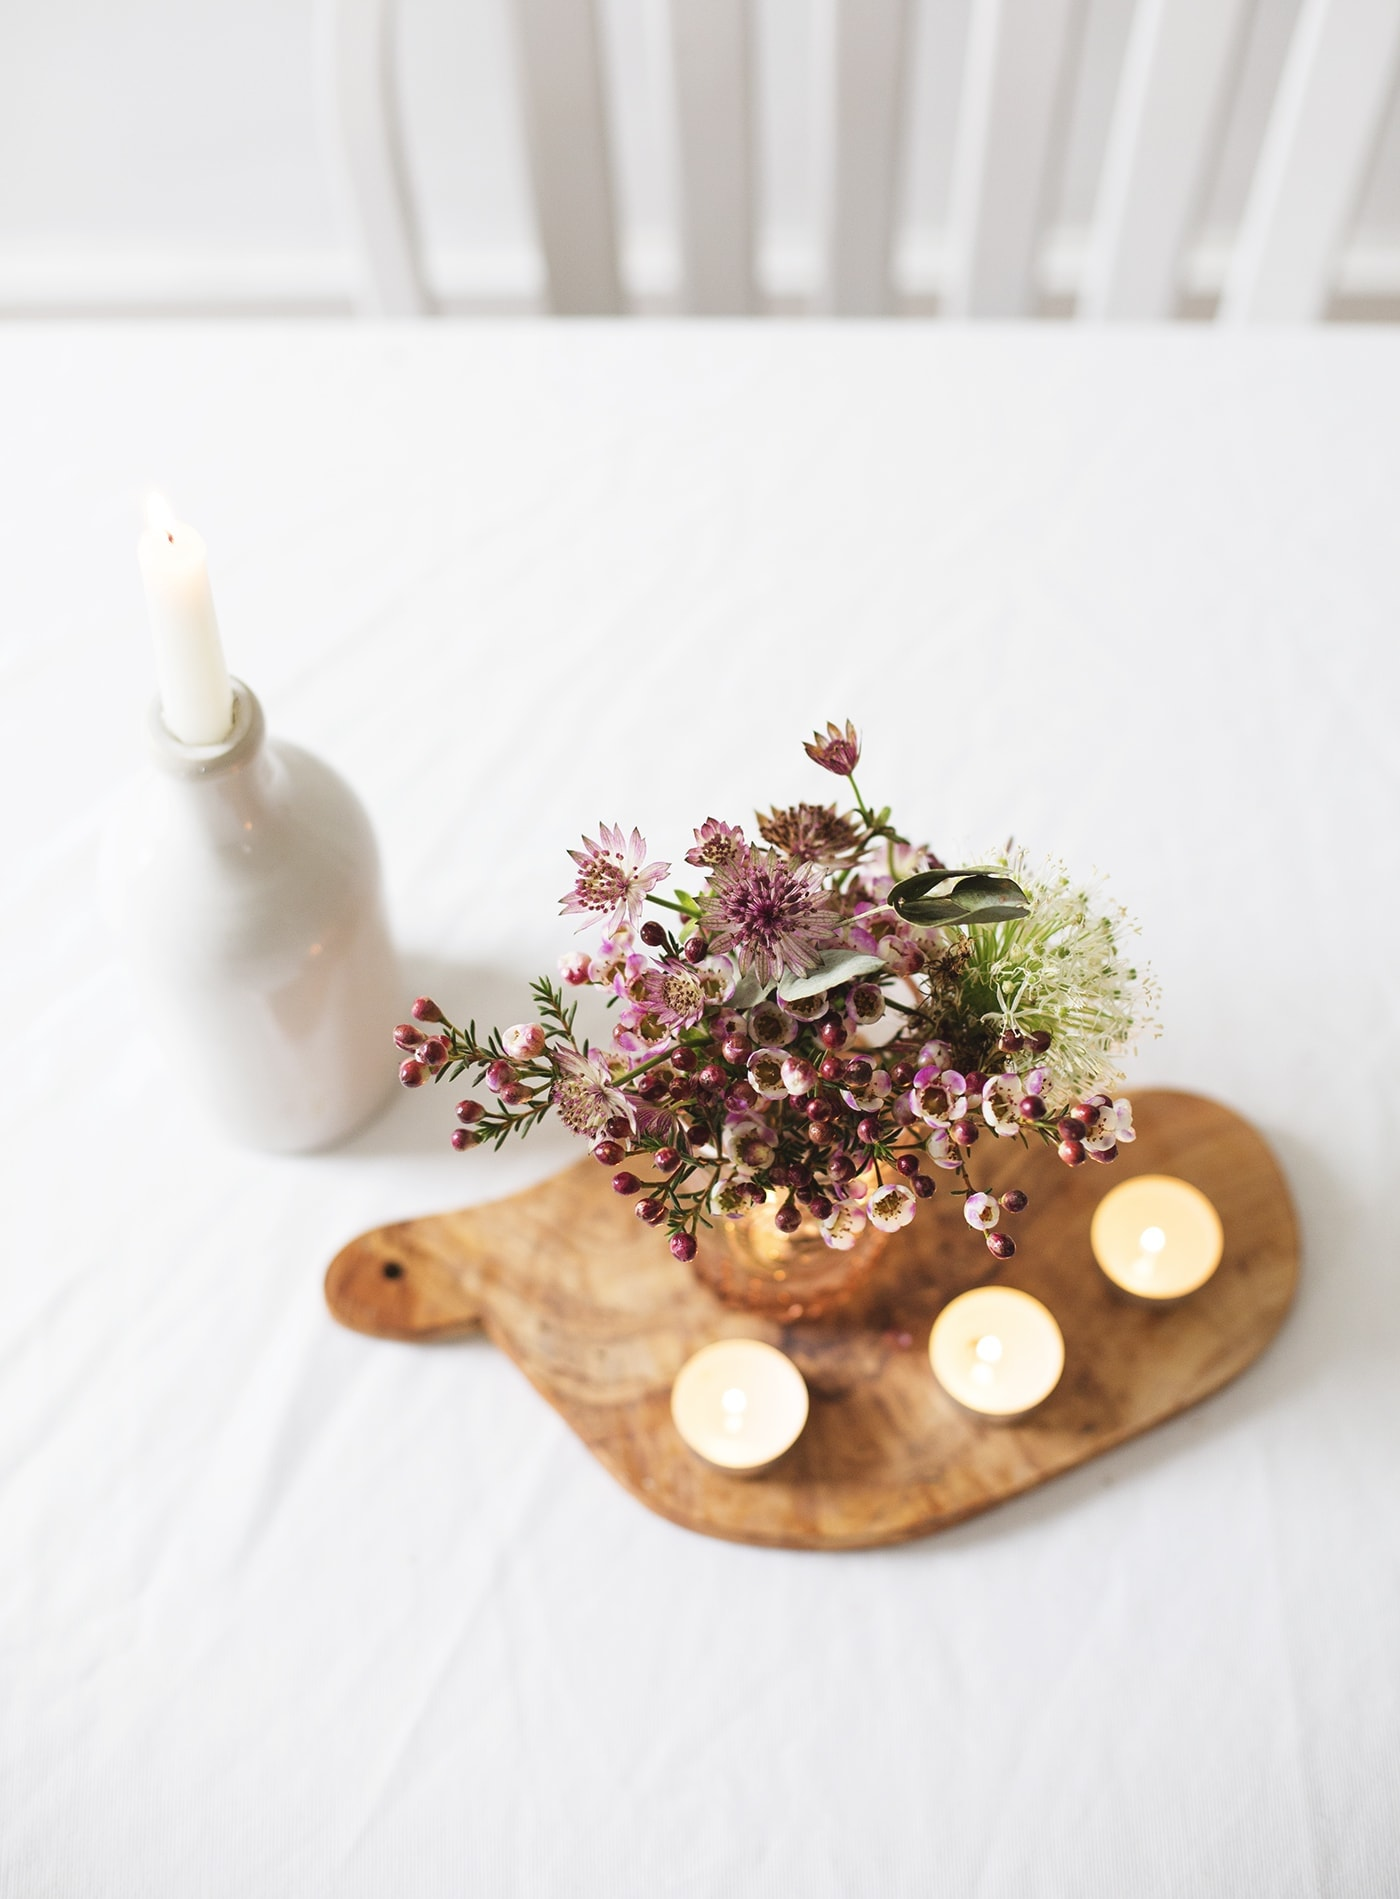 february styling the seasons | valentine's table centre